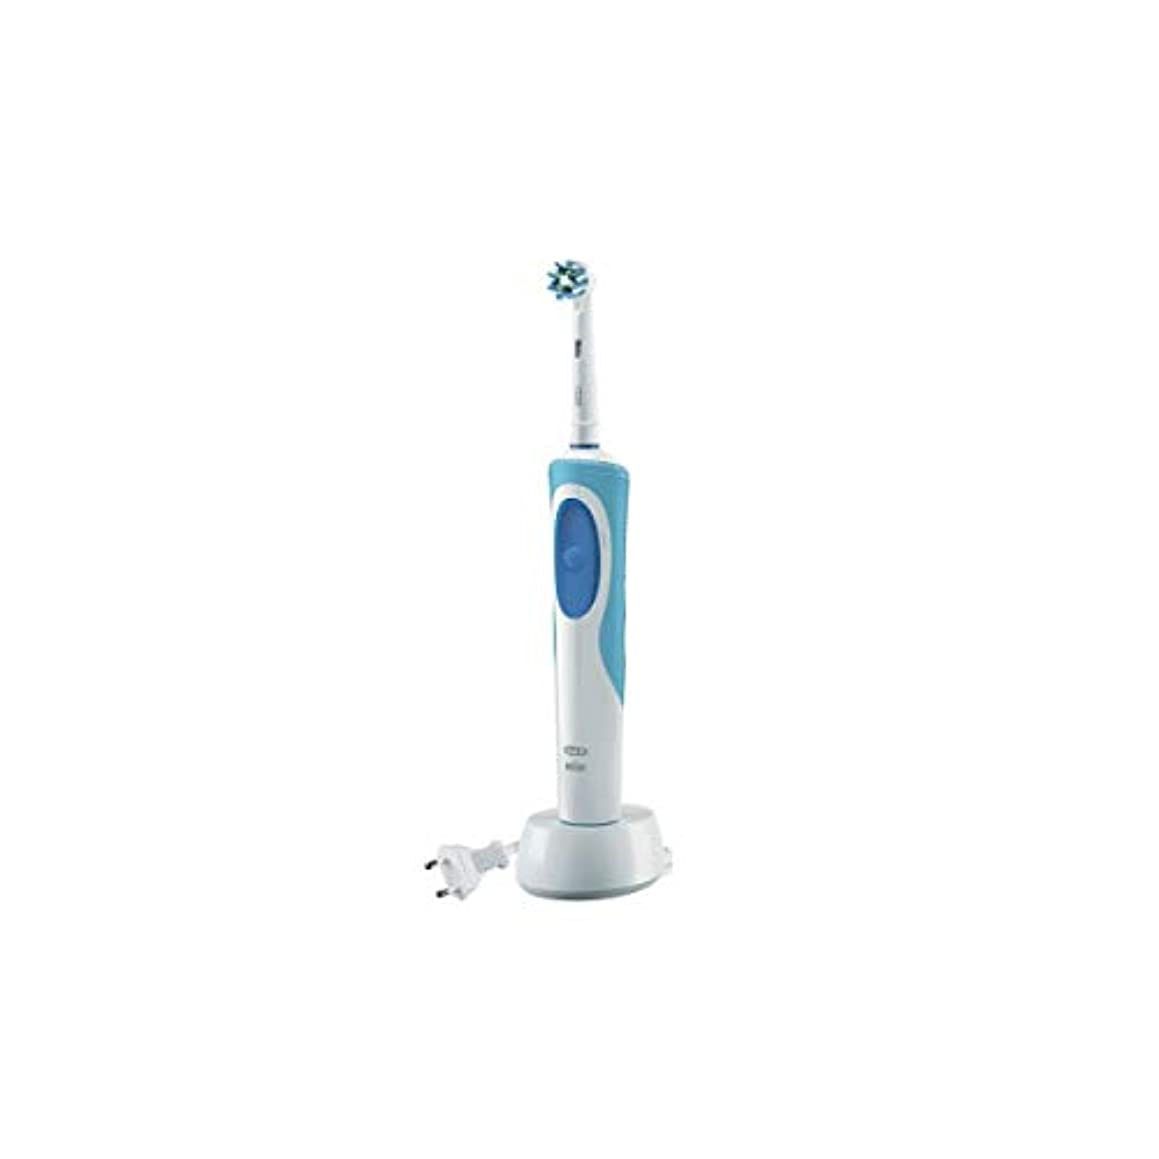 純粋にクロール投げるOral B Vitality Cross Action Electric Toothbrush [並行輸入品]